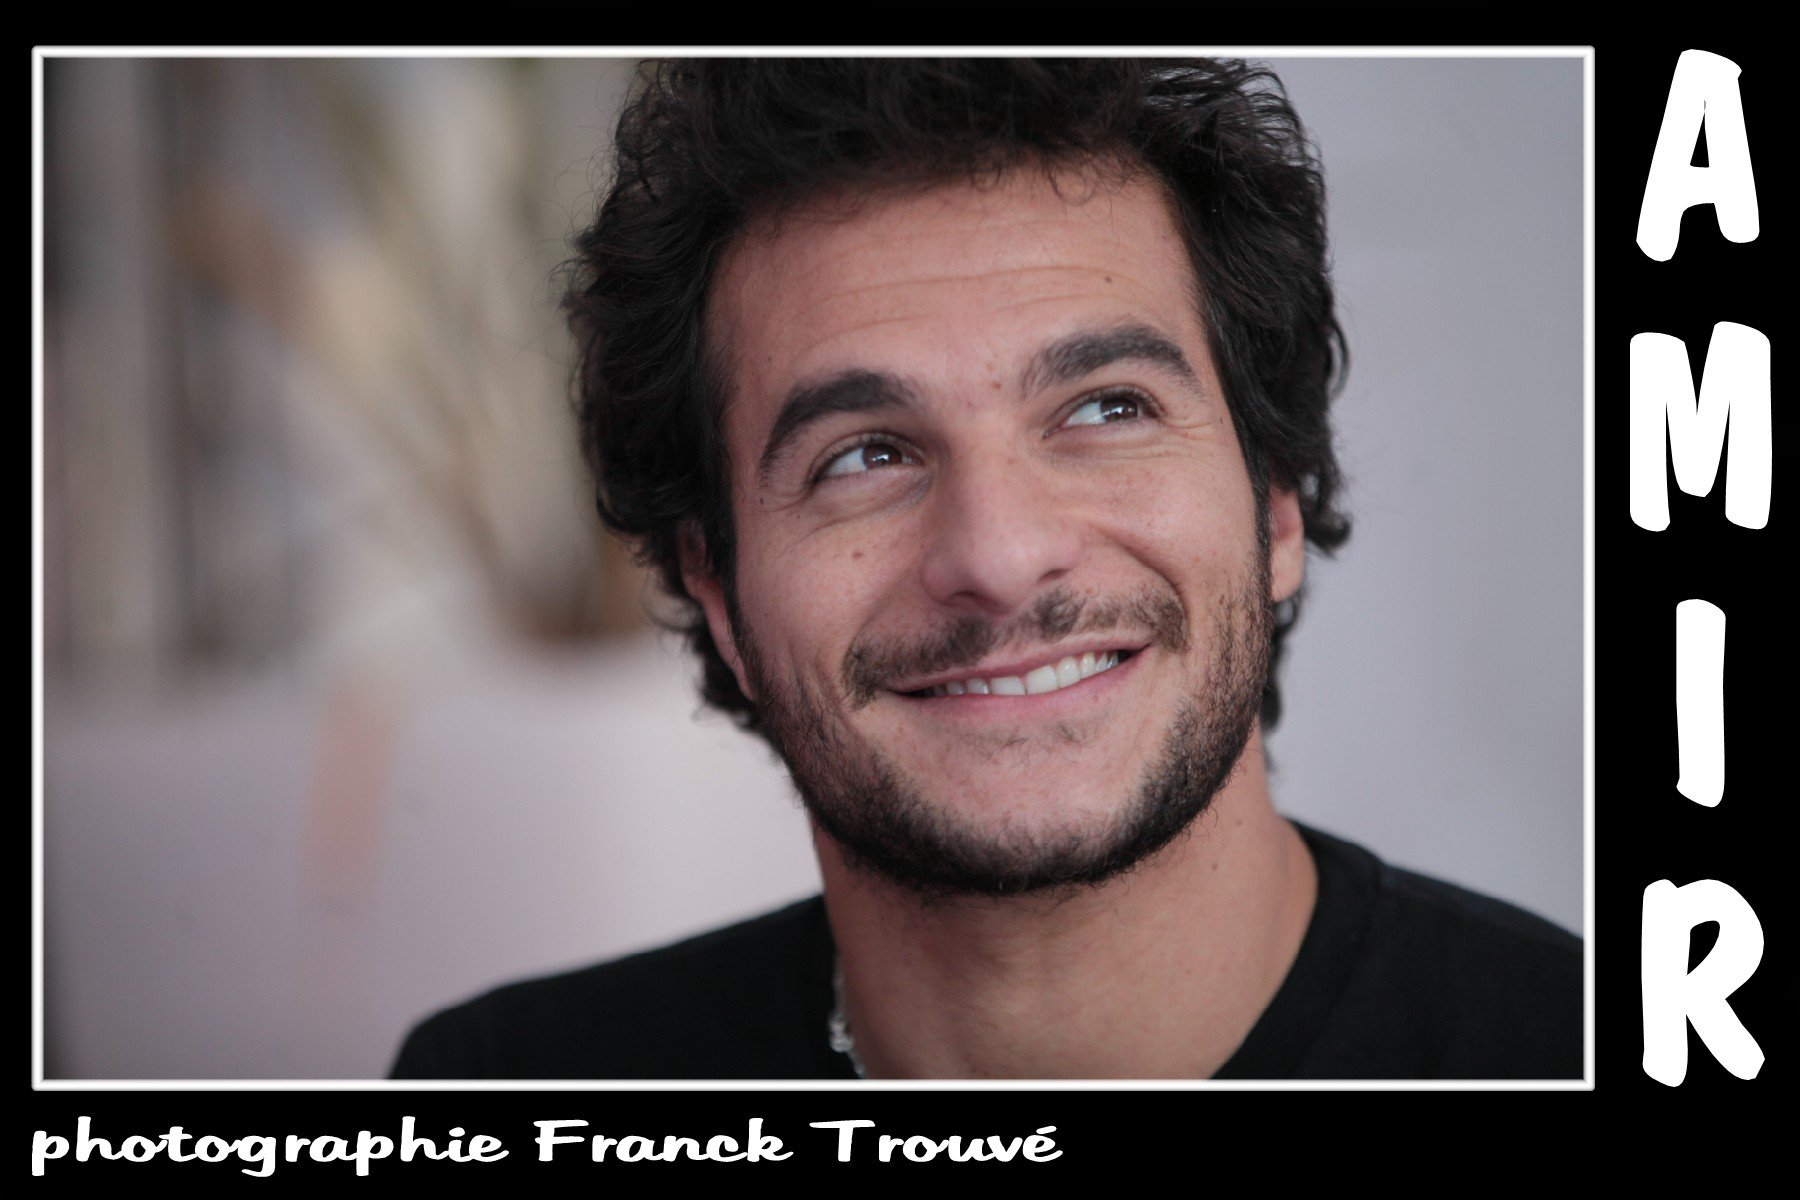 amir photo franck trouve